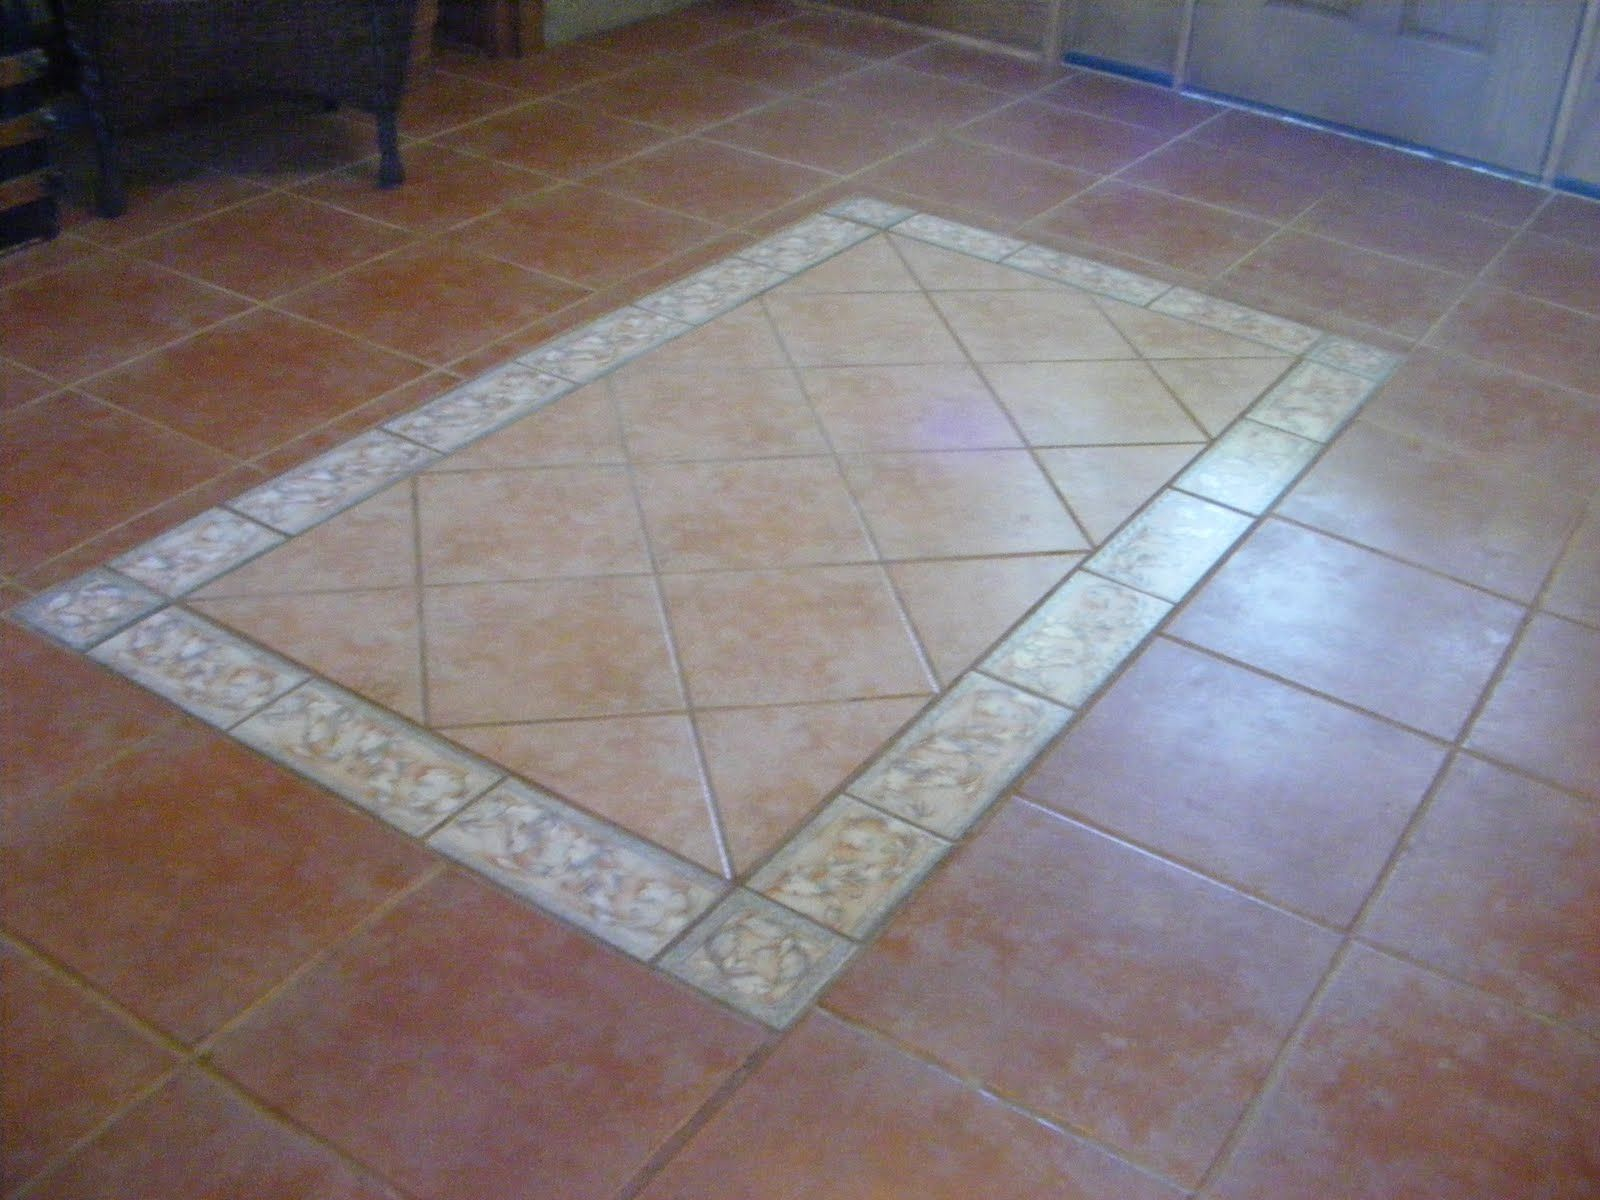 Good Tile Flooring Designs Ideas Natural Clay Ceramic Tiles With Brown Tile  Design Tile Countertops Of Awesome Pictures Of Tile Floor Patterns Design  From ...